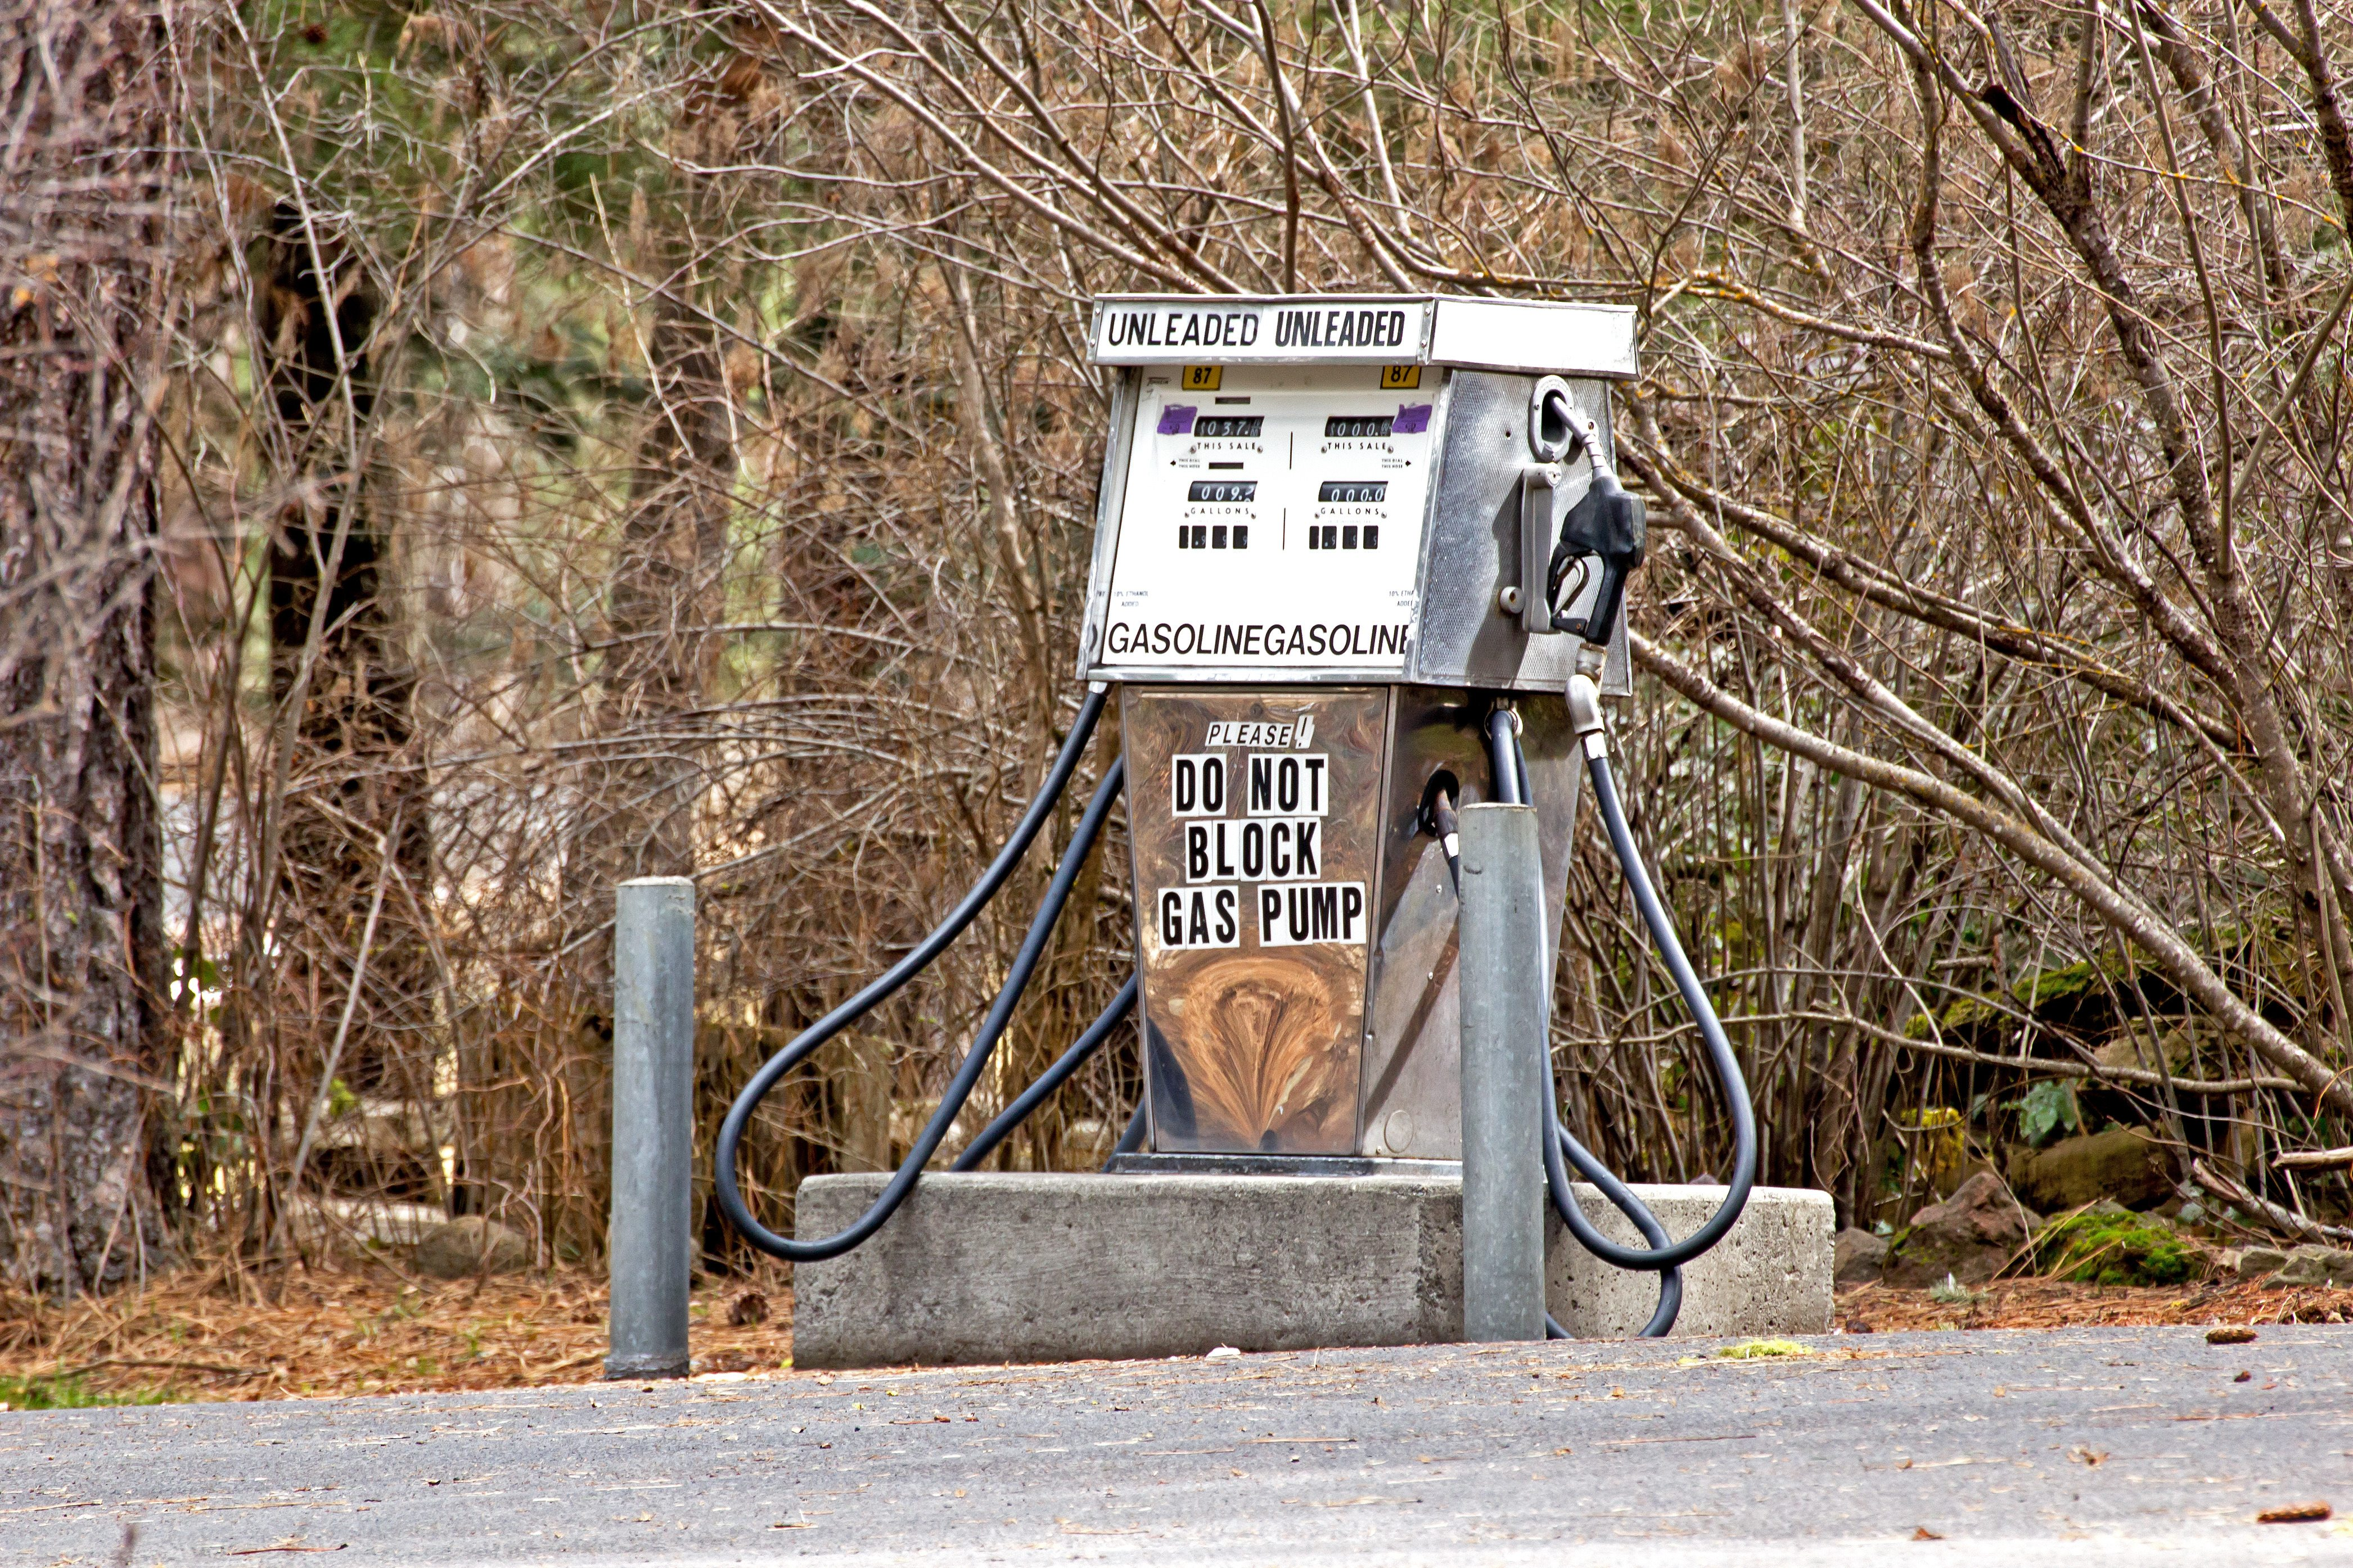 When It's Almost Trade-In Time: Getting Better Gas Mileage from Your Old Truck